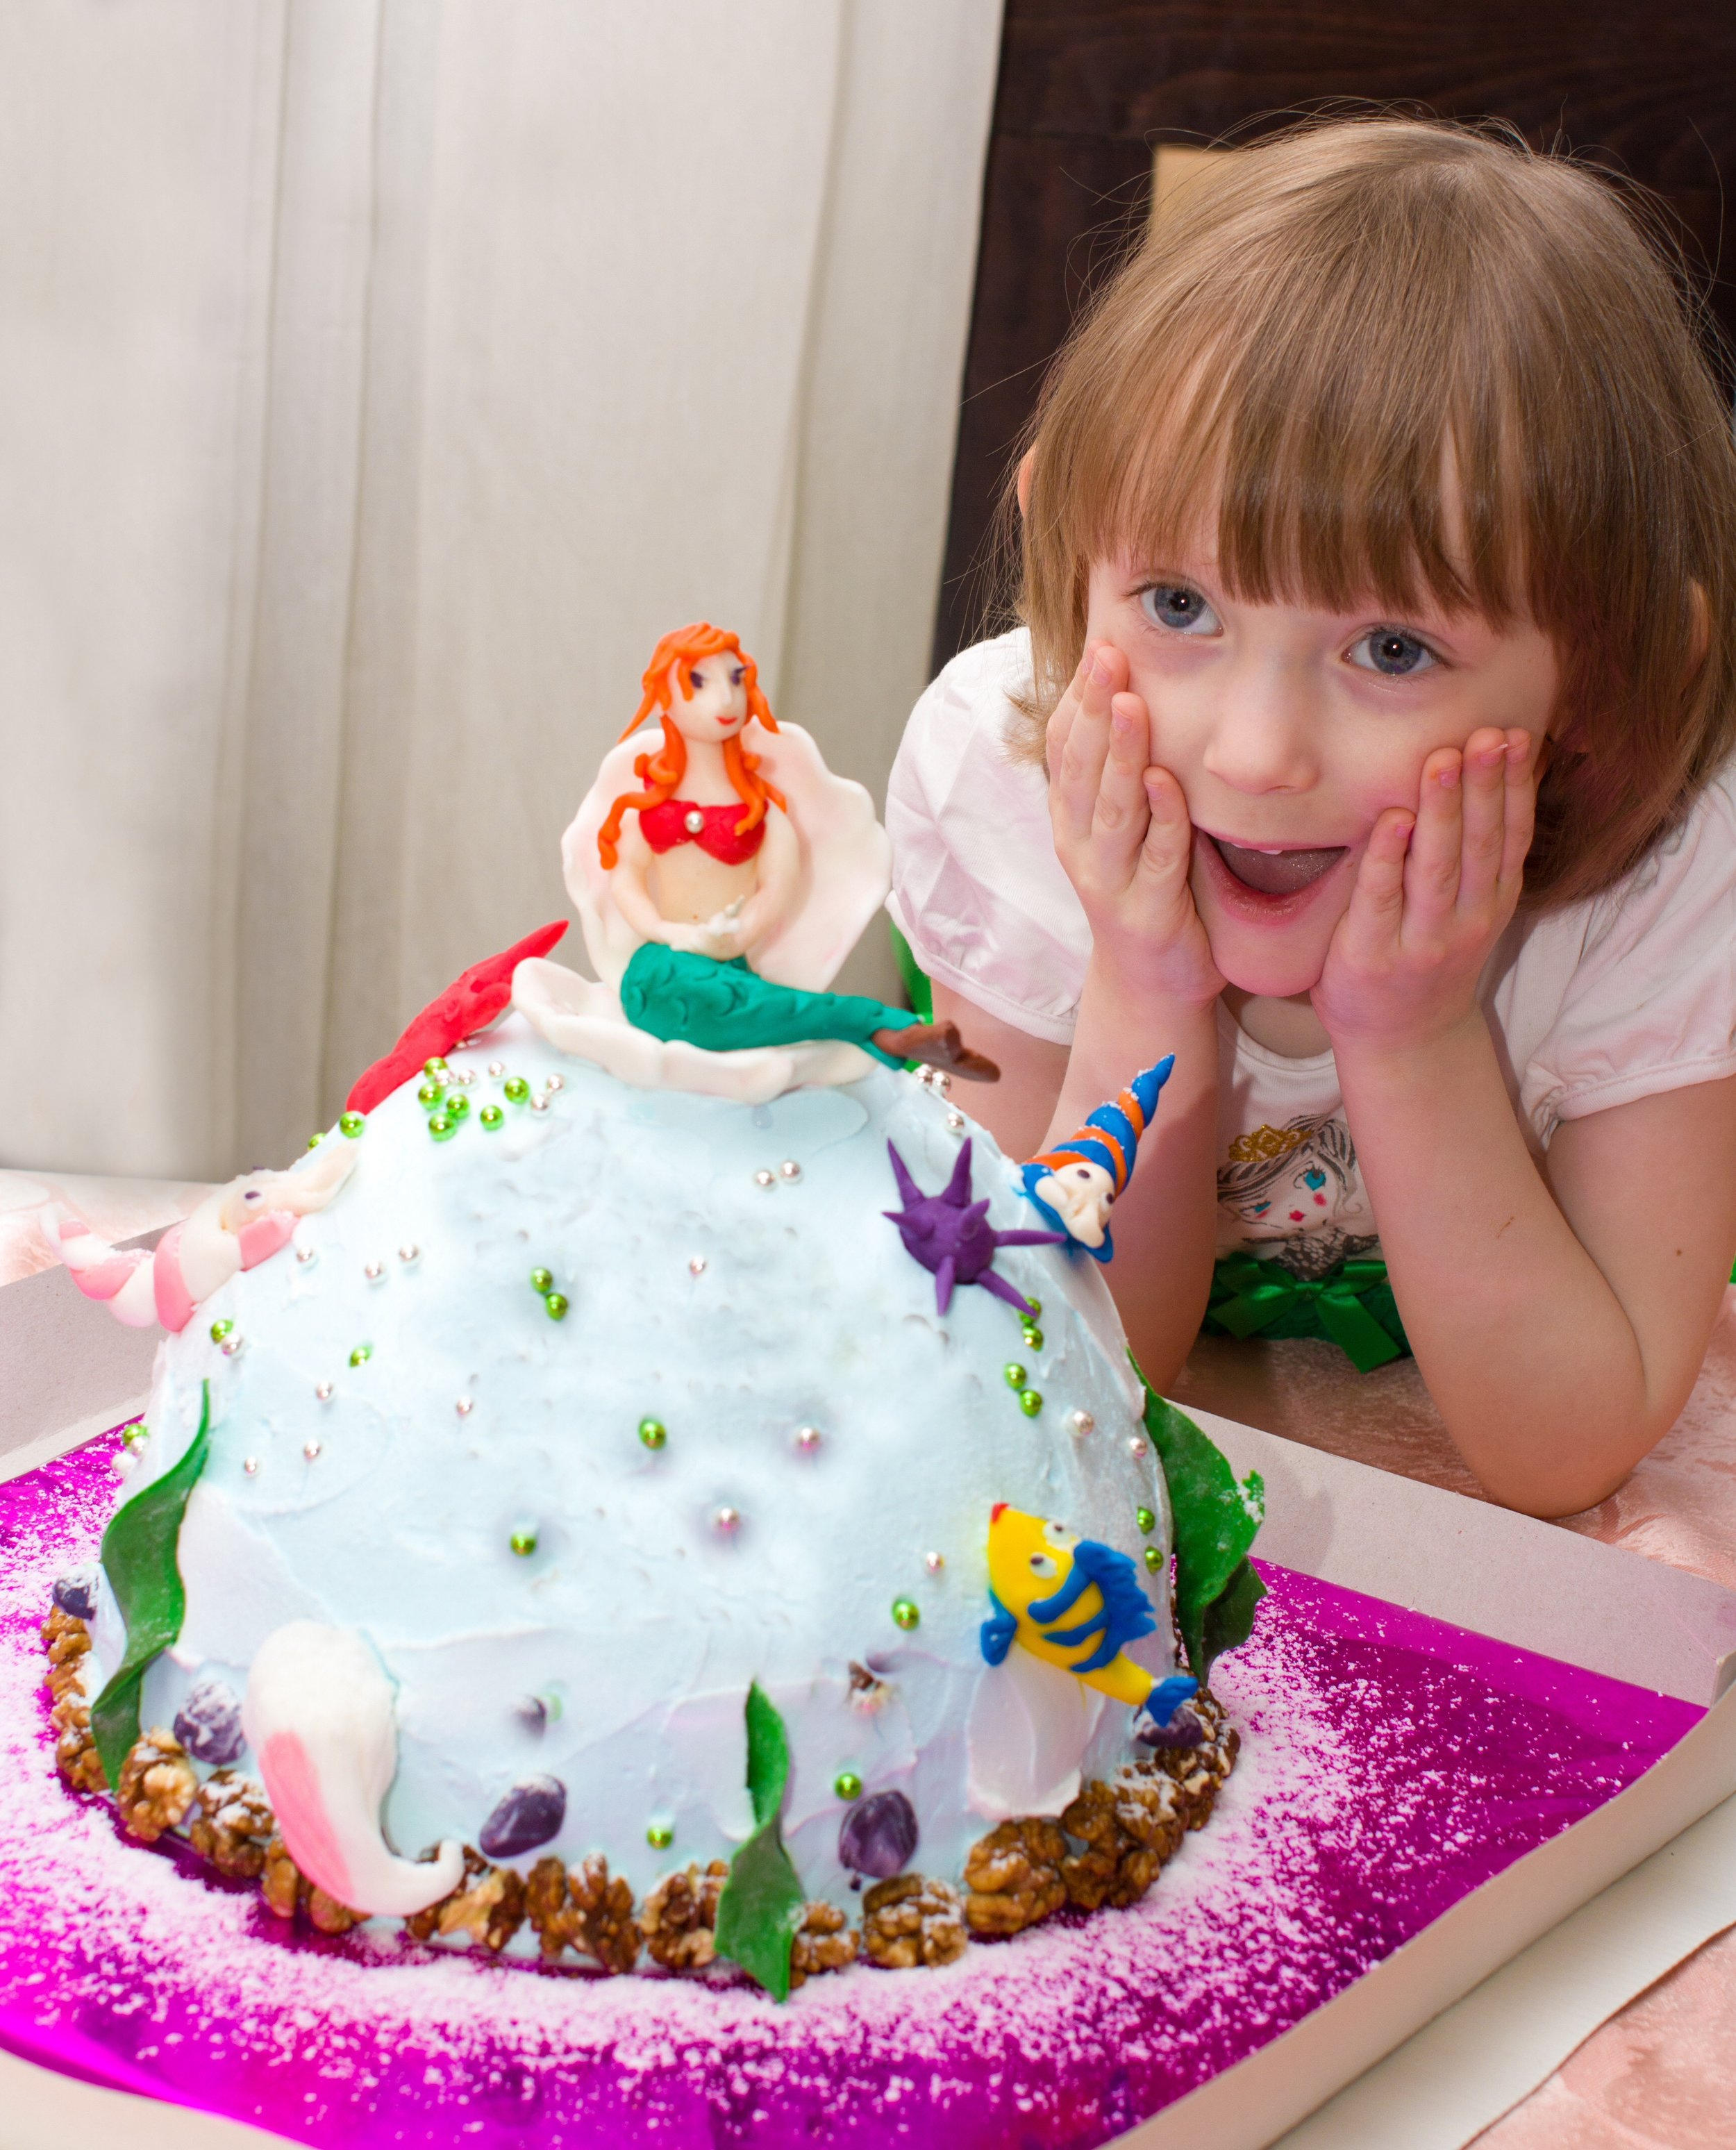 A DIY Little Mermaid birthday cake has made this little girl very happy! | LYFETYMES is your #1 party planning website and we rounded up the BEST mermaid birthday party ideas.